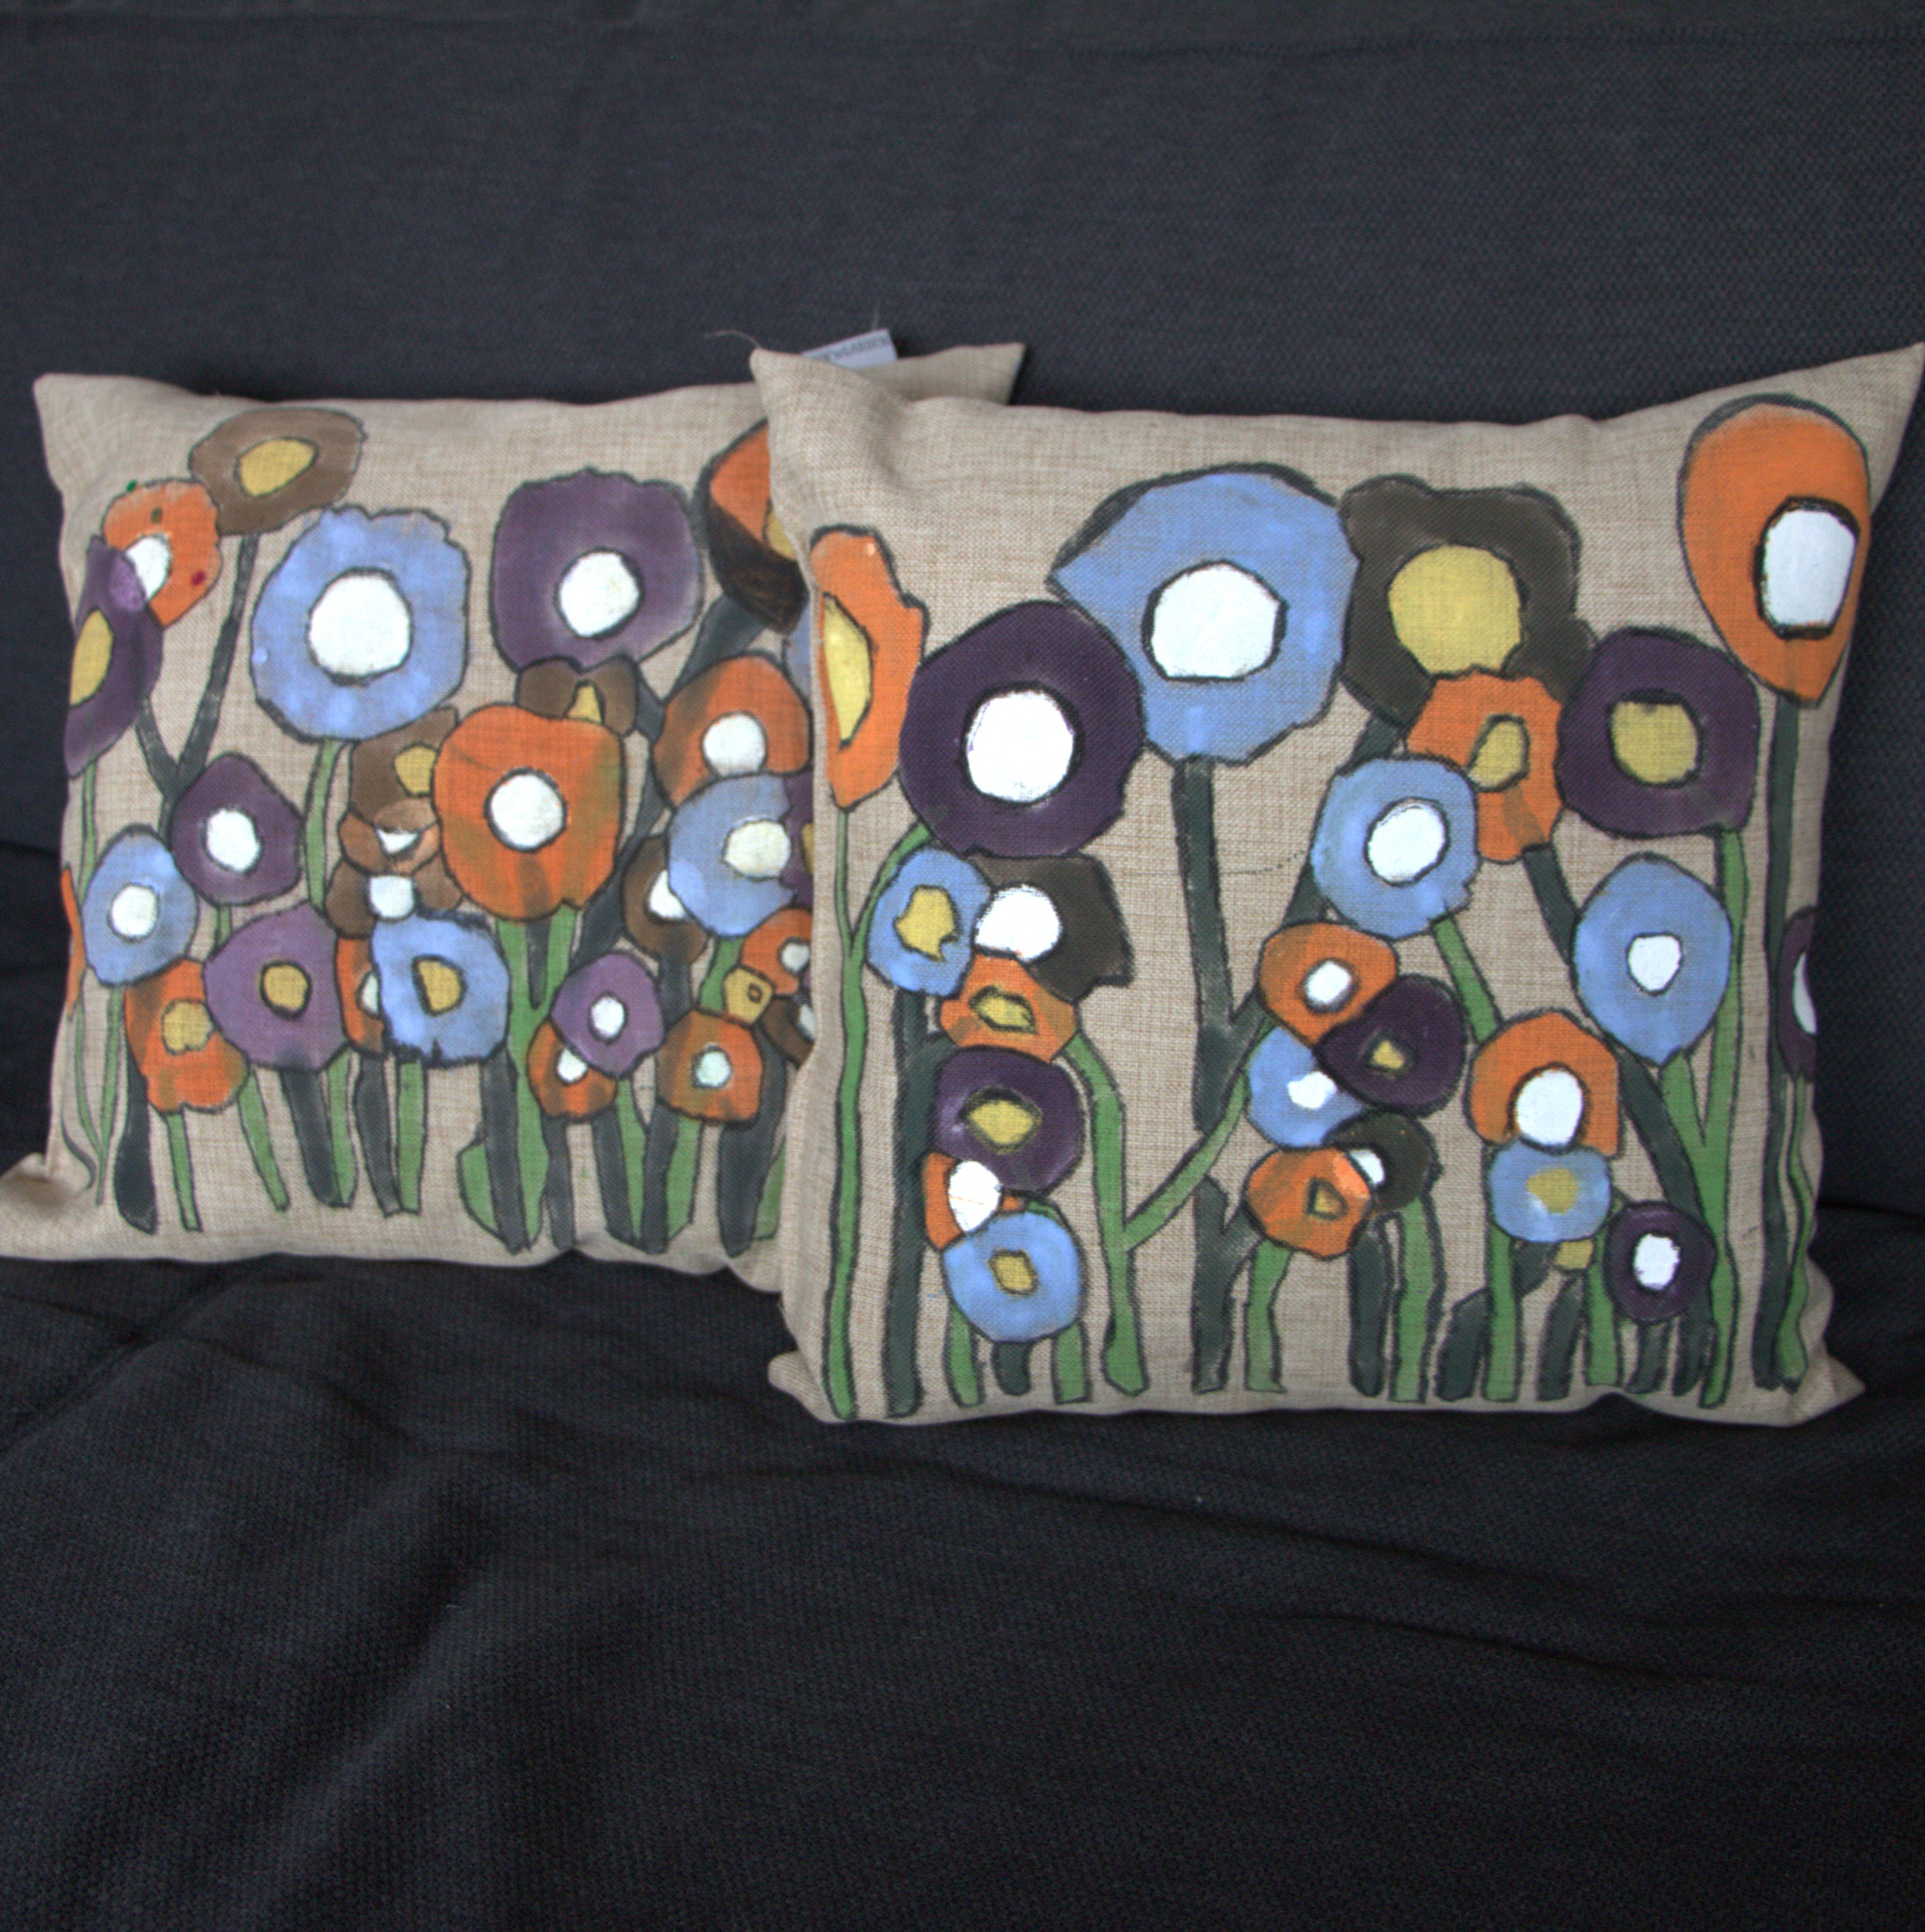 Diy Painted Throw Pillows : DIY Pillow Decoration: How to Make a Painted Accent Pillow